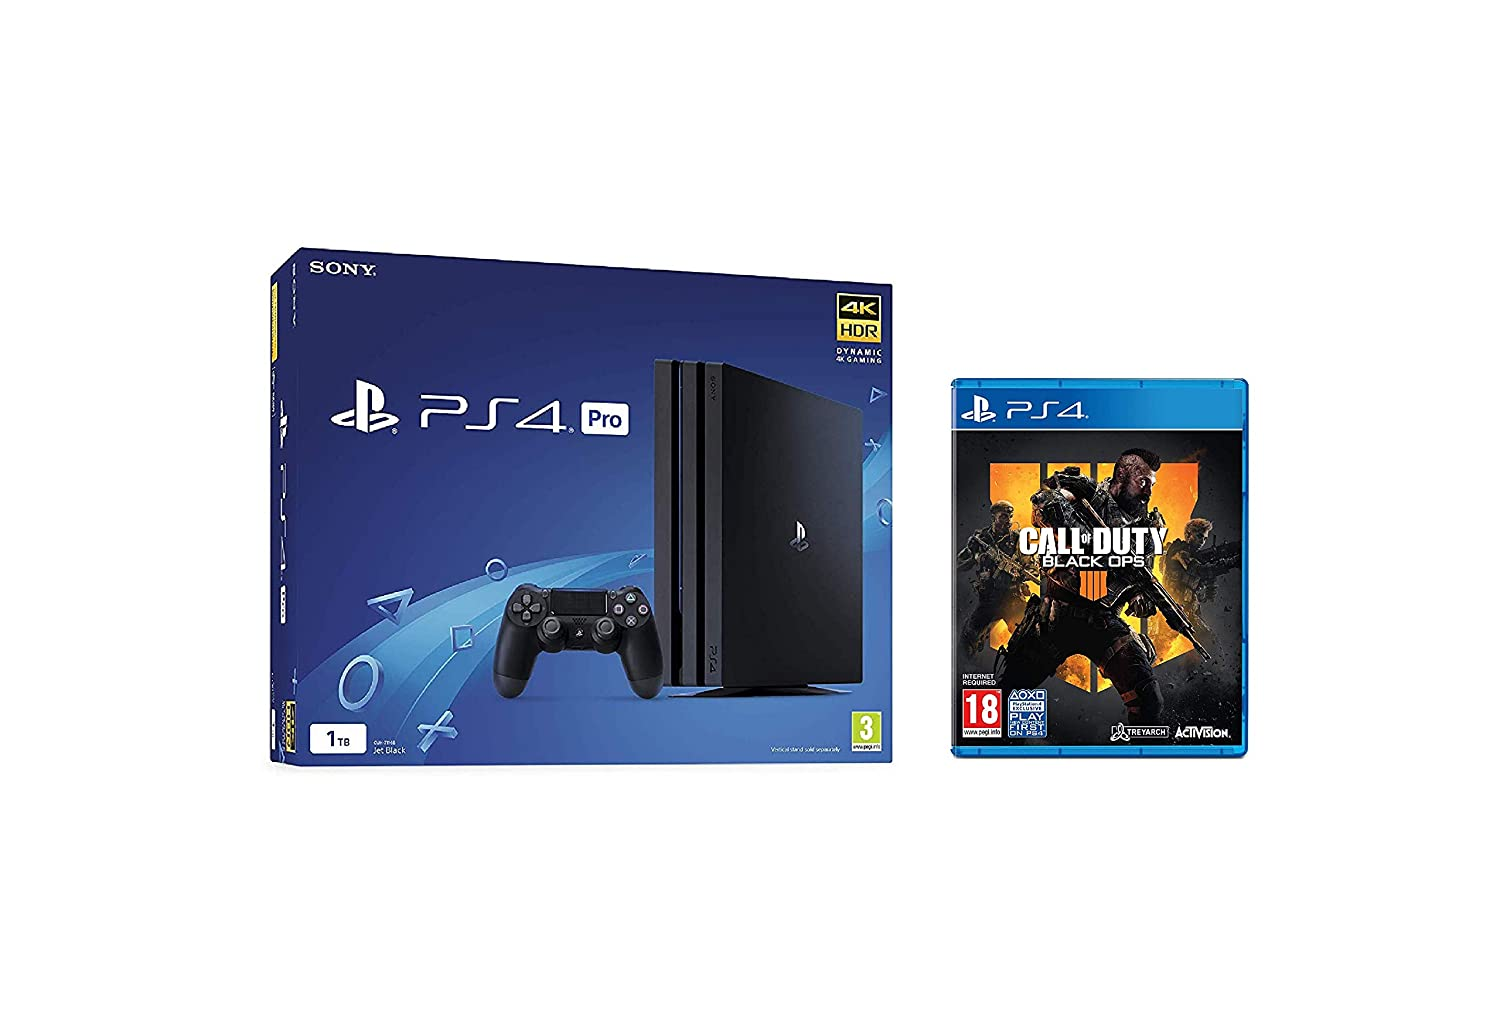 Sony Playstation 4 Pro 1tb Console Black Ps4 Pro Amazon